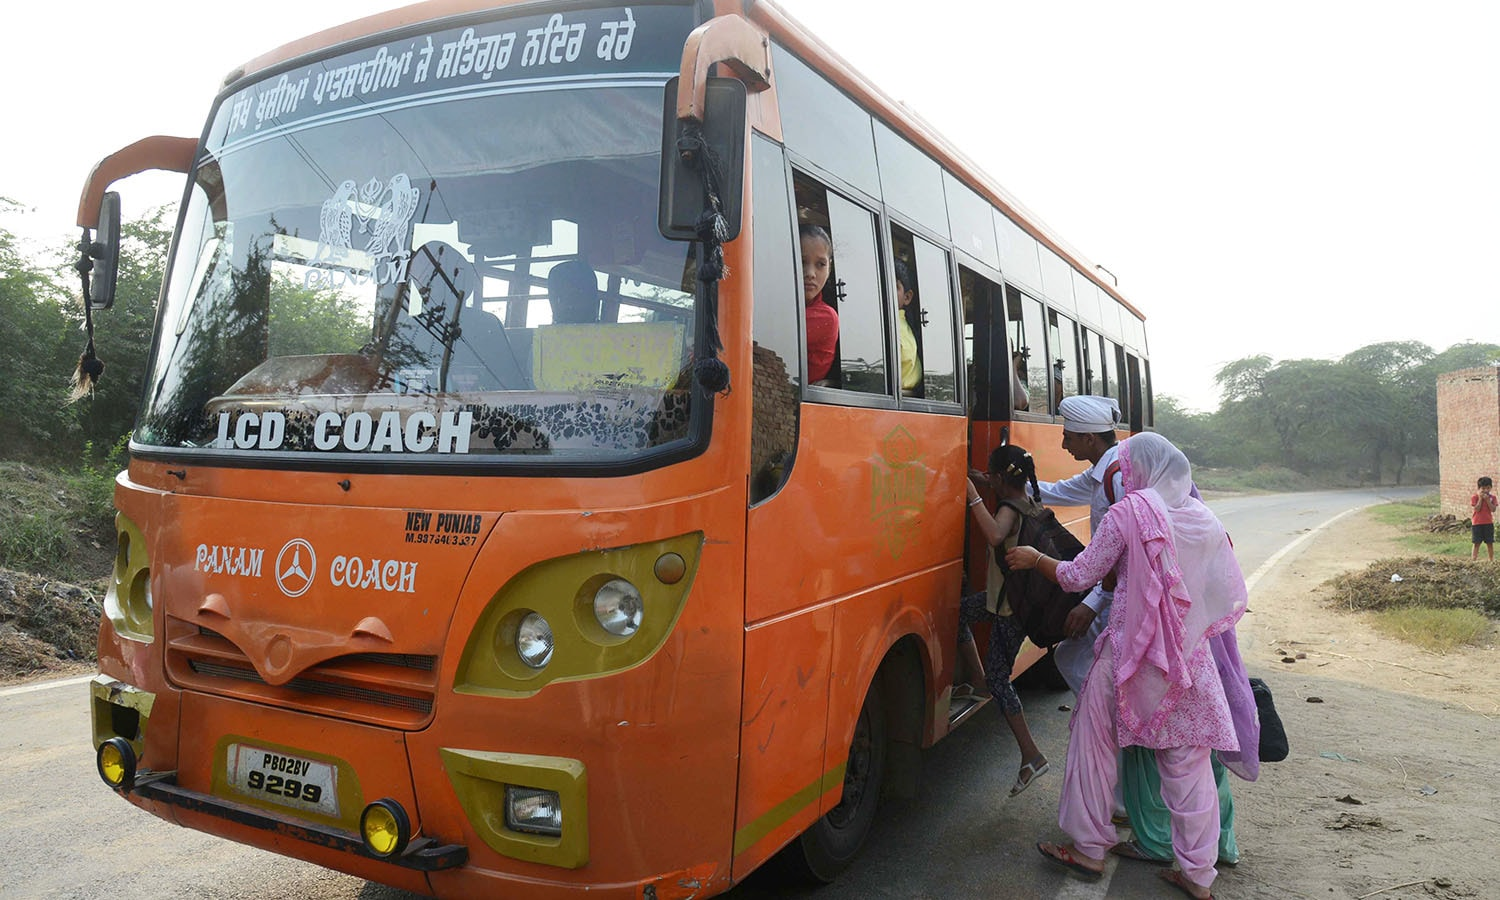 Indian villagers from the India-Pakistan border area board the bus as they evacuate from the border village of Neshta. — AFP